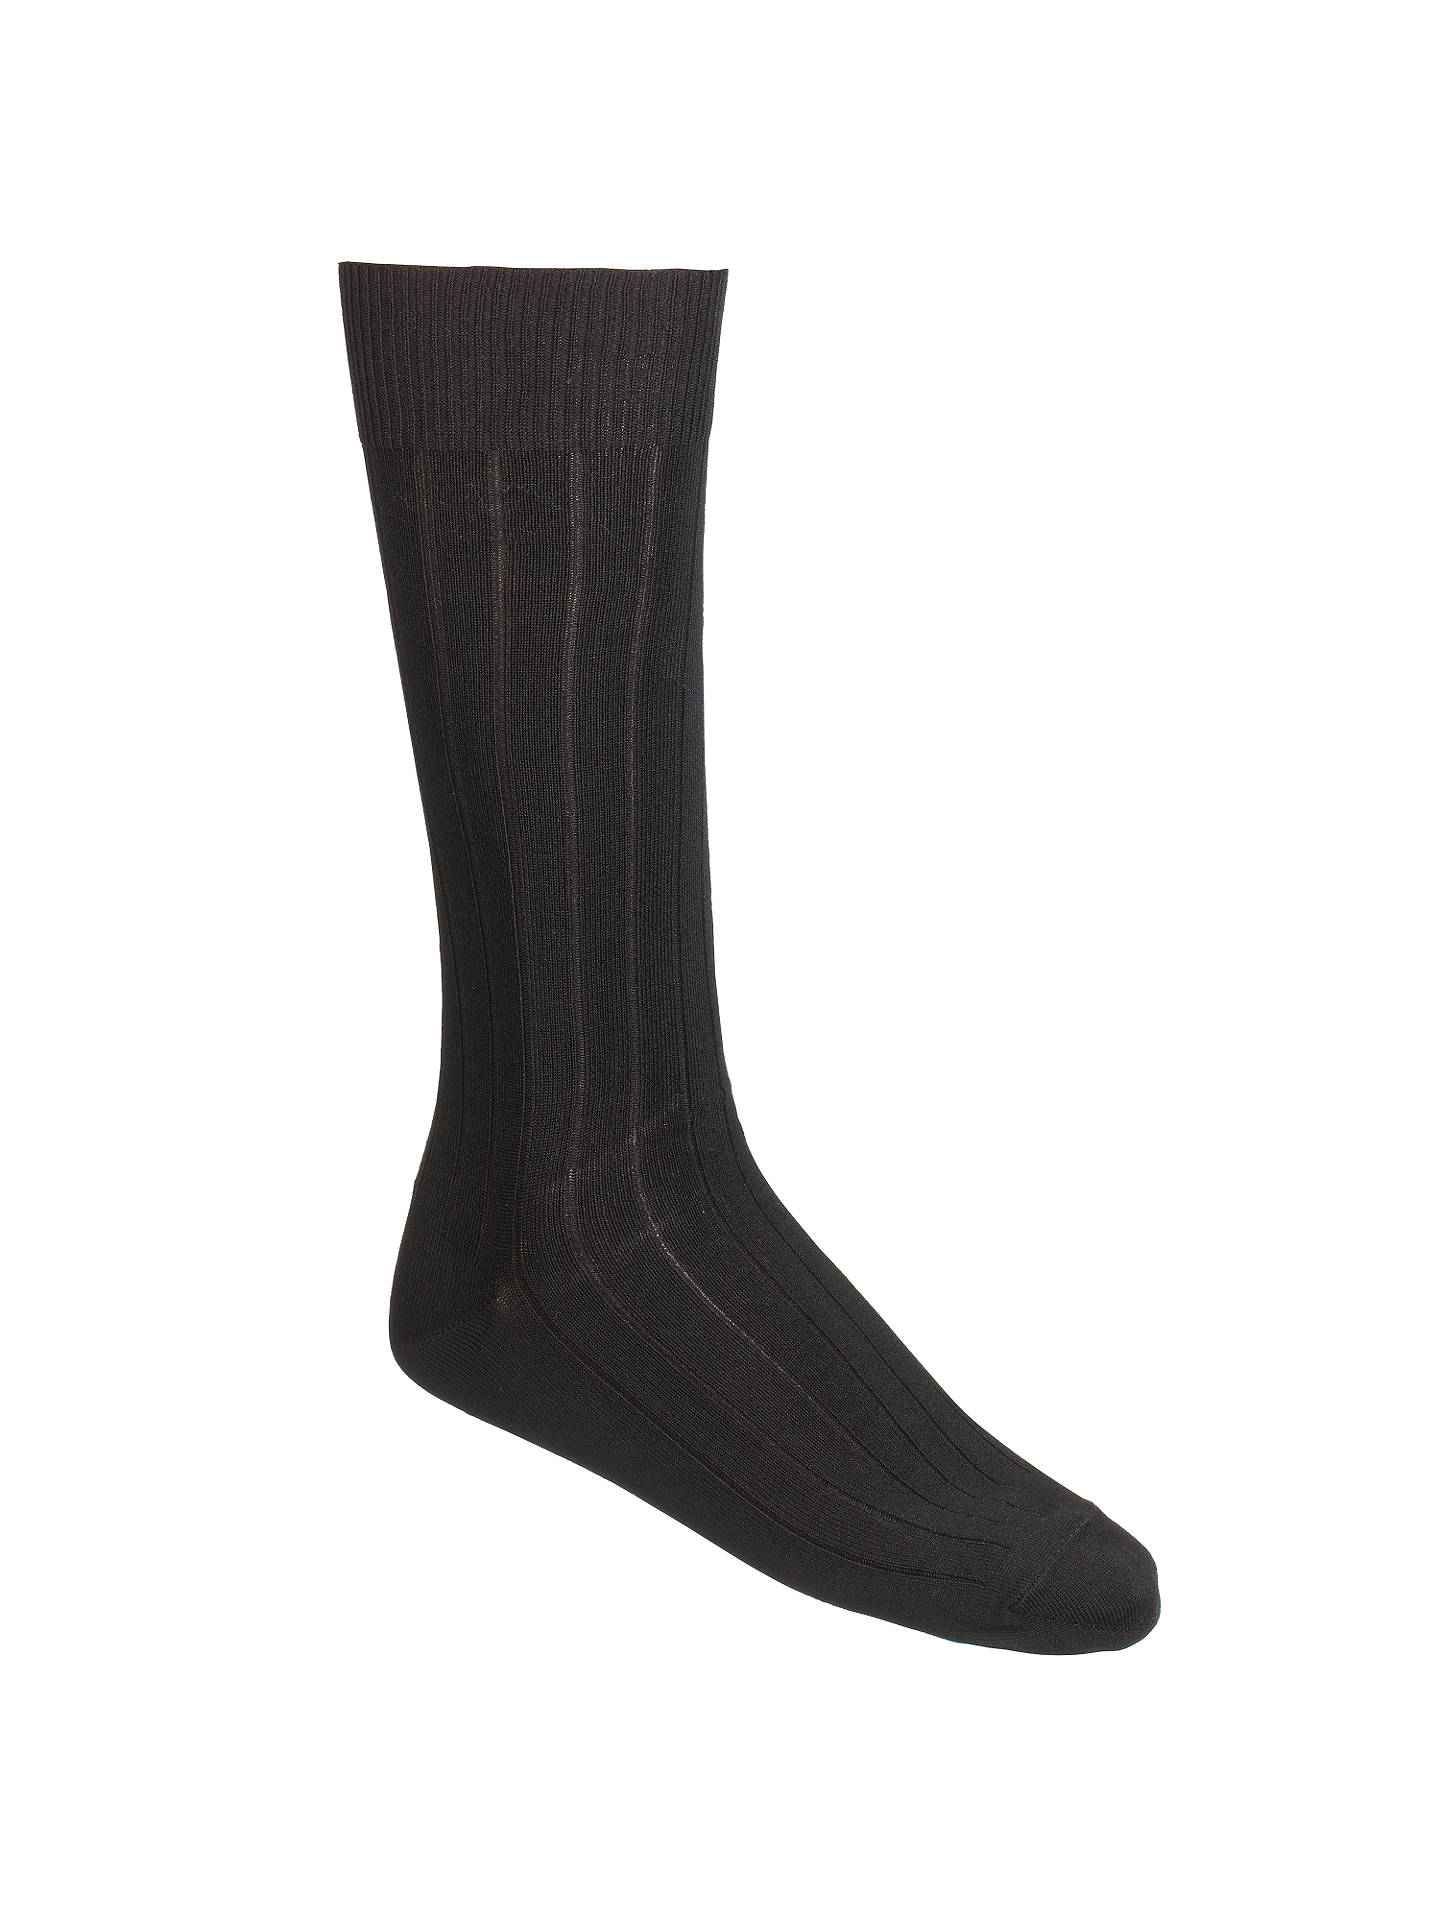 BuyCalvin Klein Rib Socks, Pack of 3, One Size, Black Online at johnlewis.com